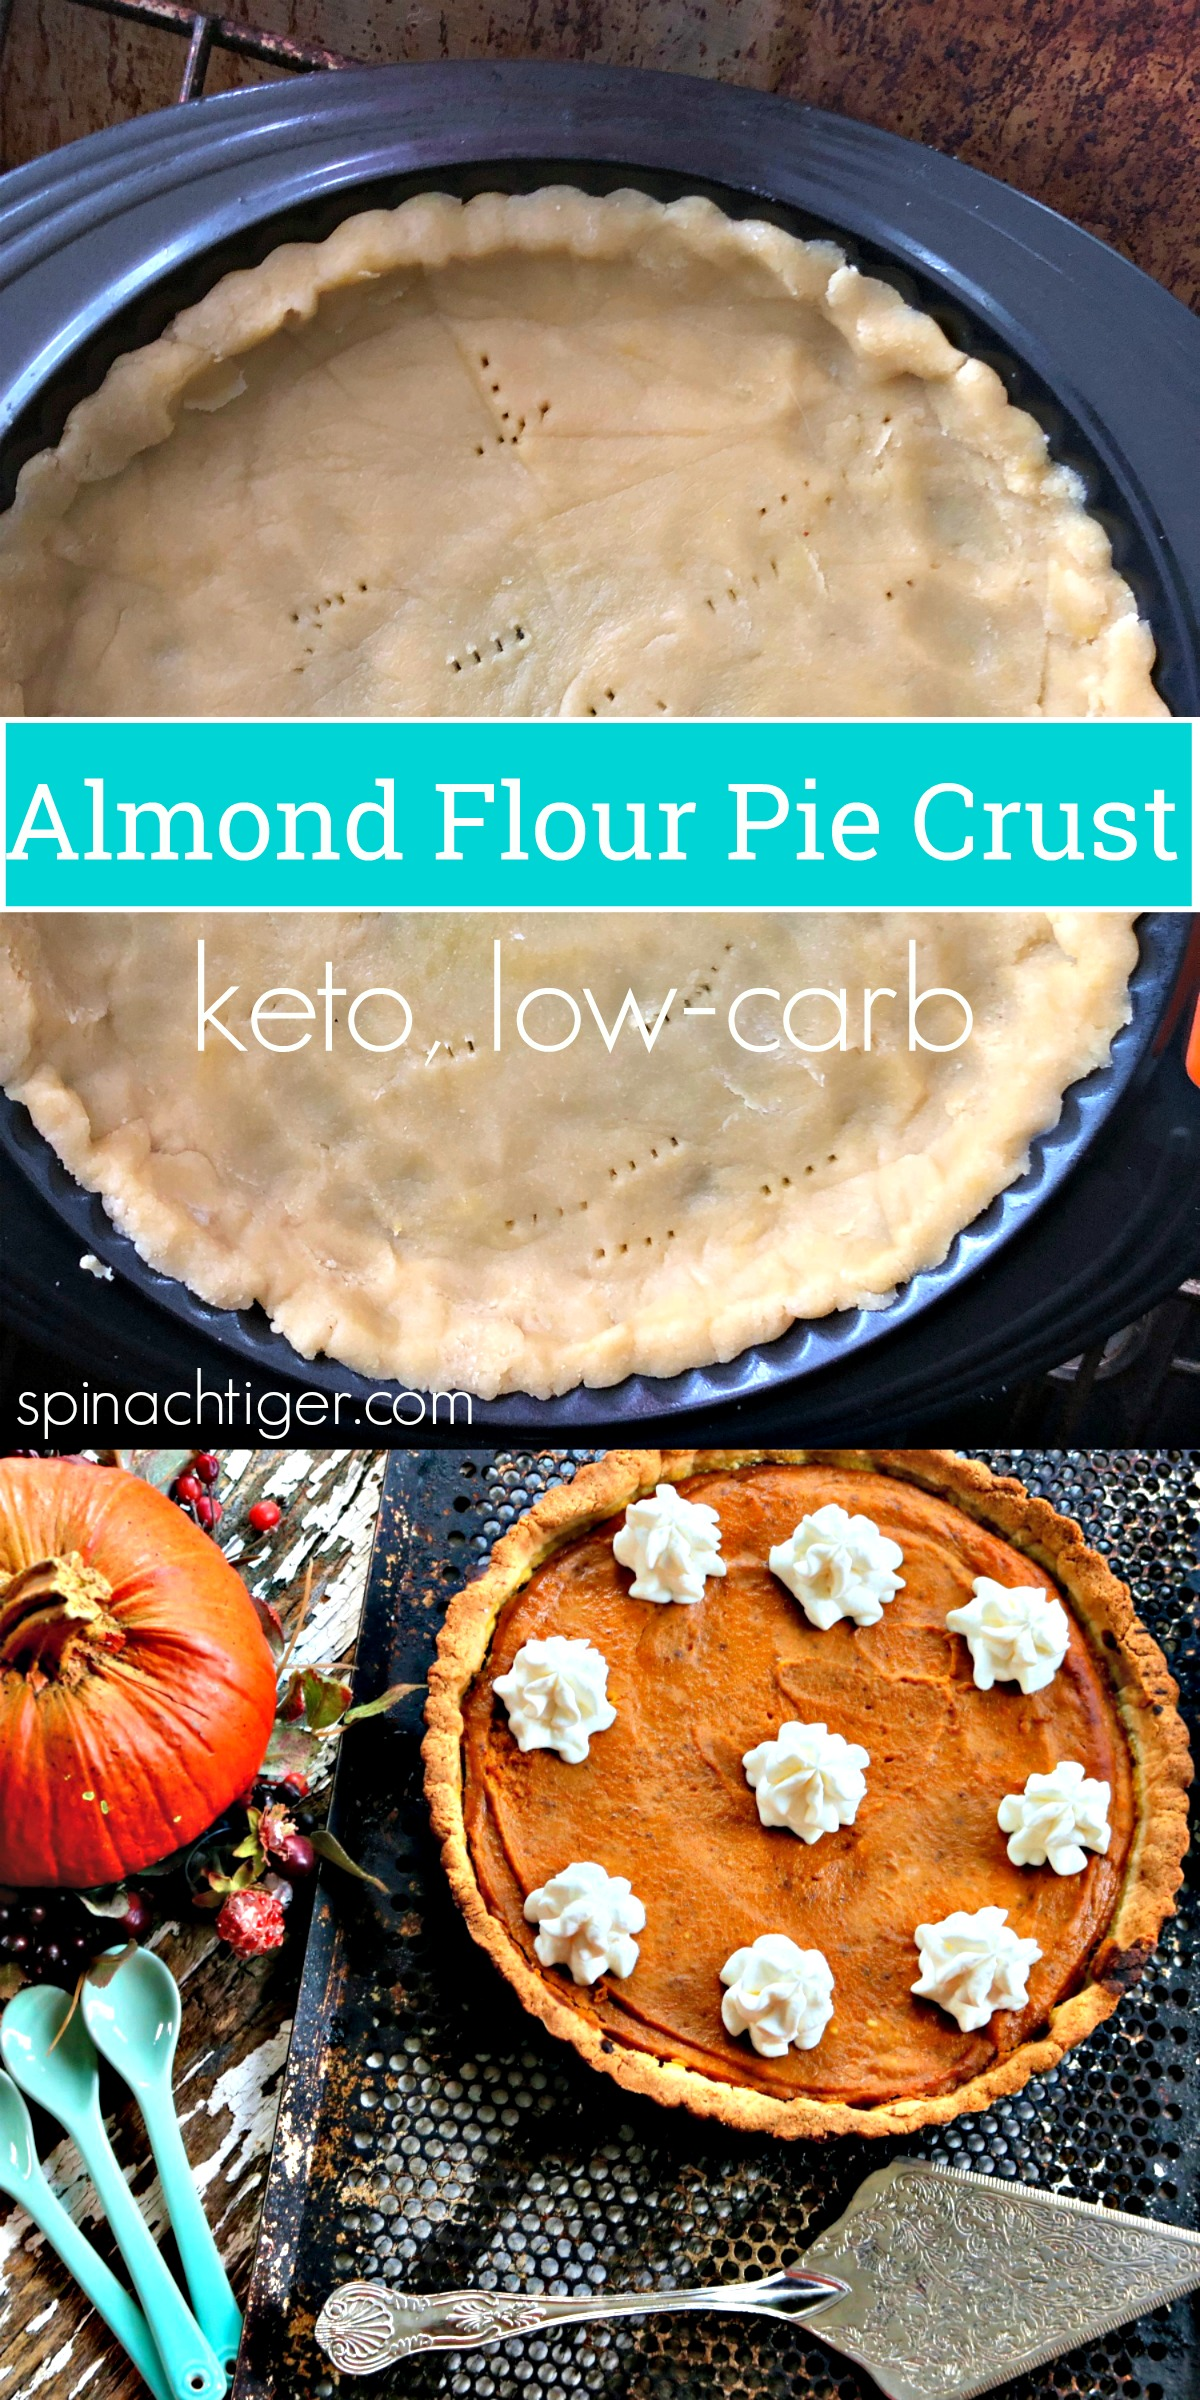 Low Carb Pumpkin Pie, Almond Flour Pie Crust, Keto, 7 net carbs from spinach tiger